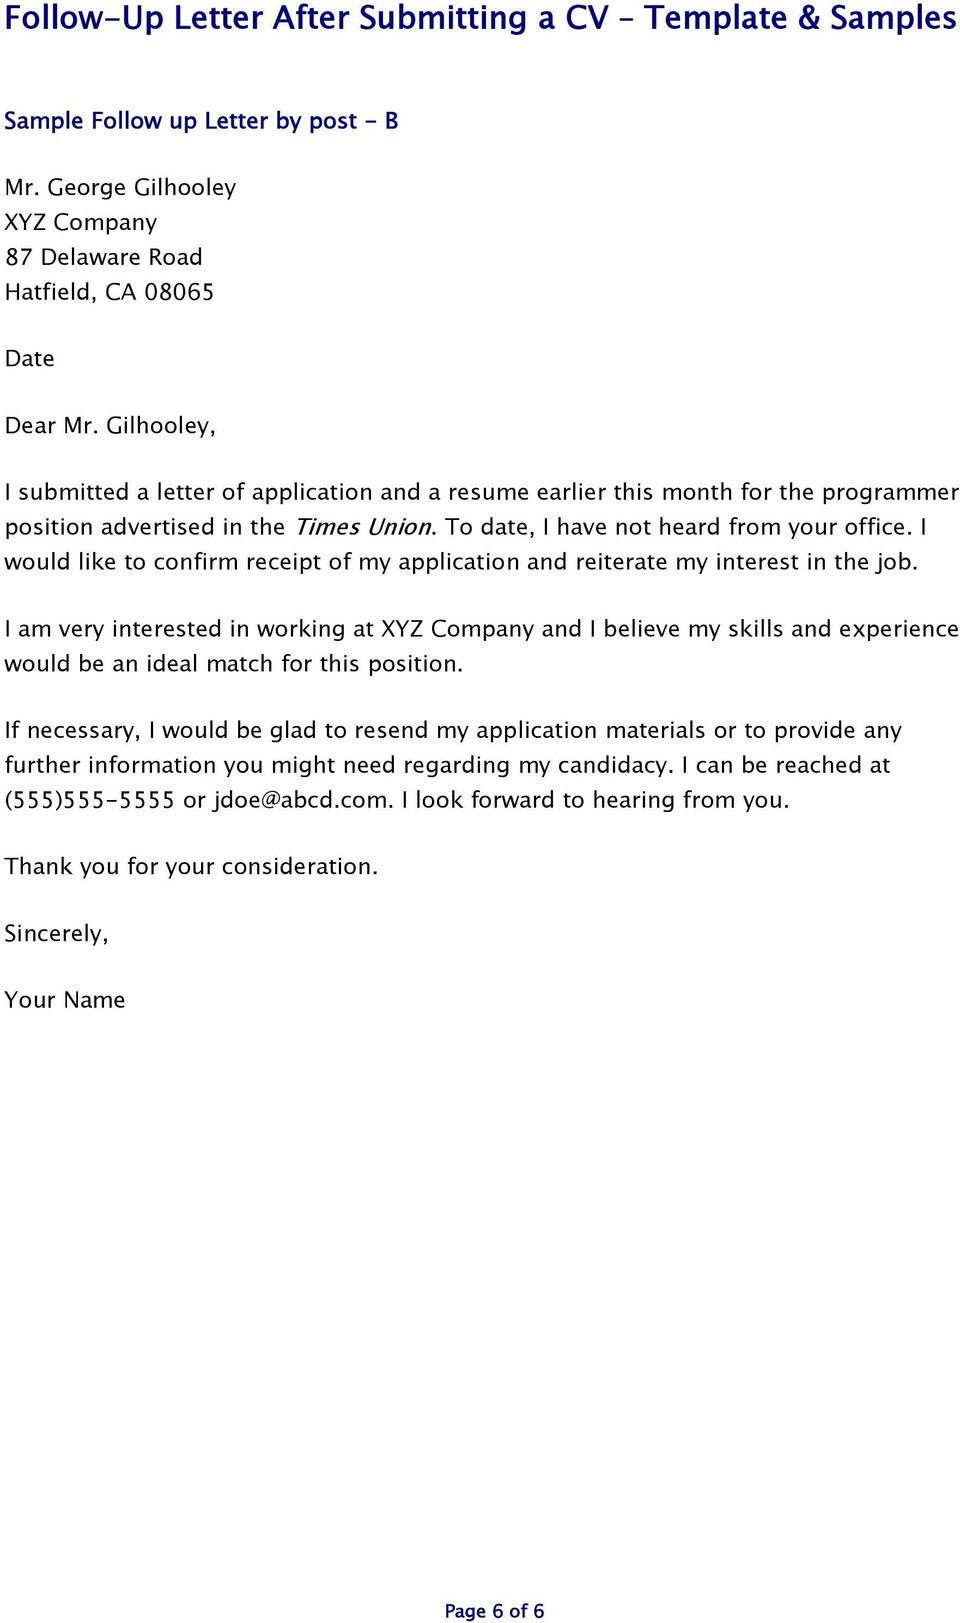 Follow Up Cover Letter After Submitting Resume from docplayer.net